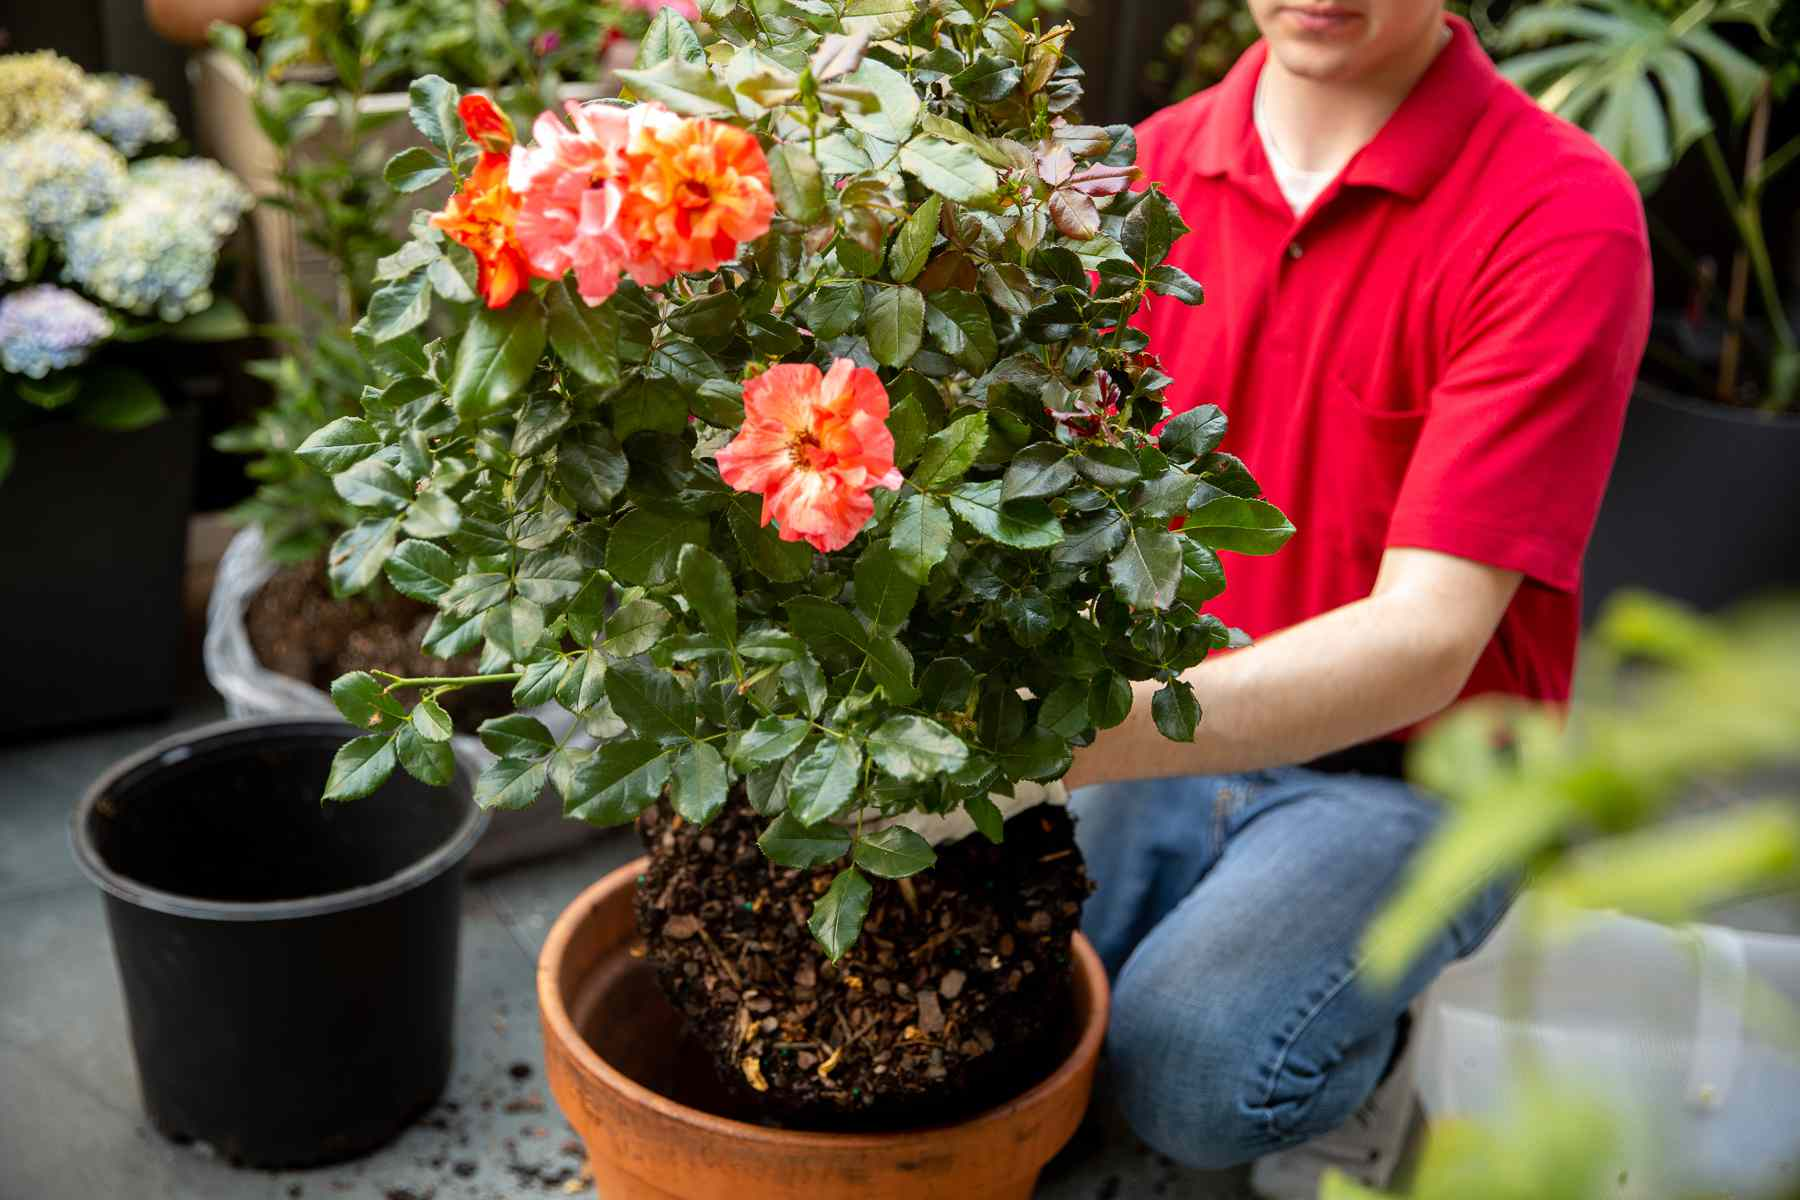 Potted rose bush with orange-red flowers placed into large clay pot